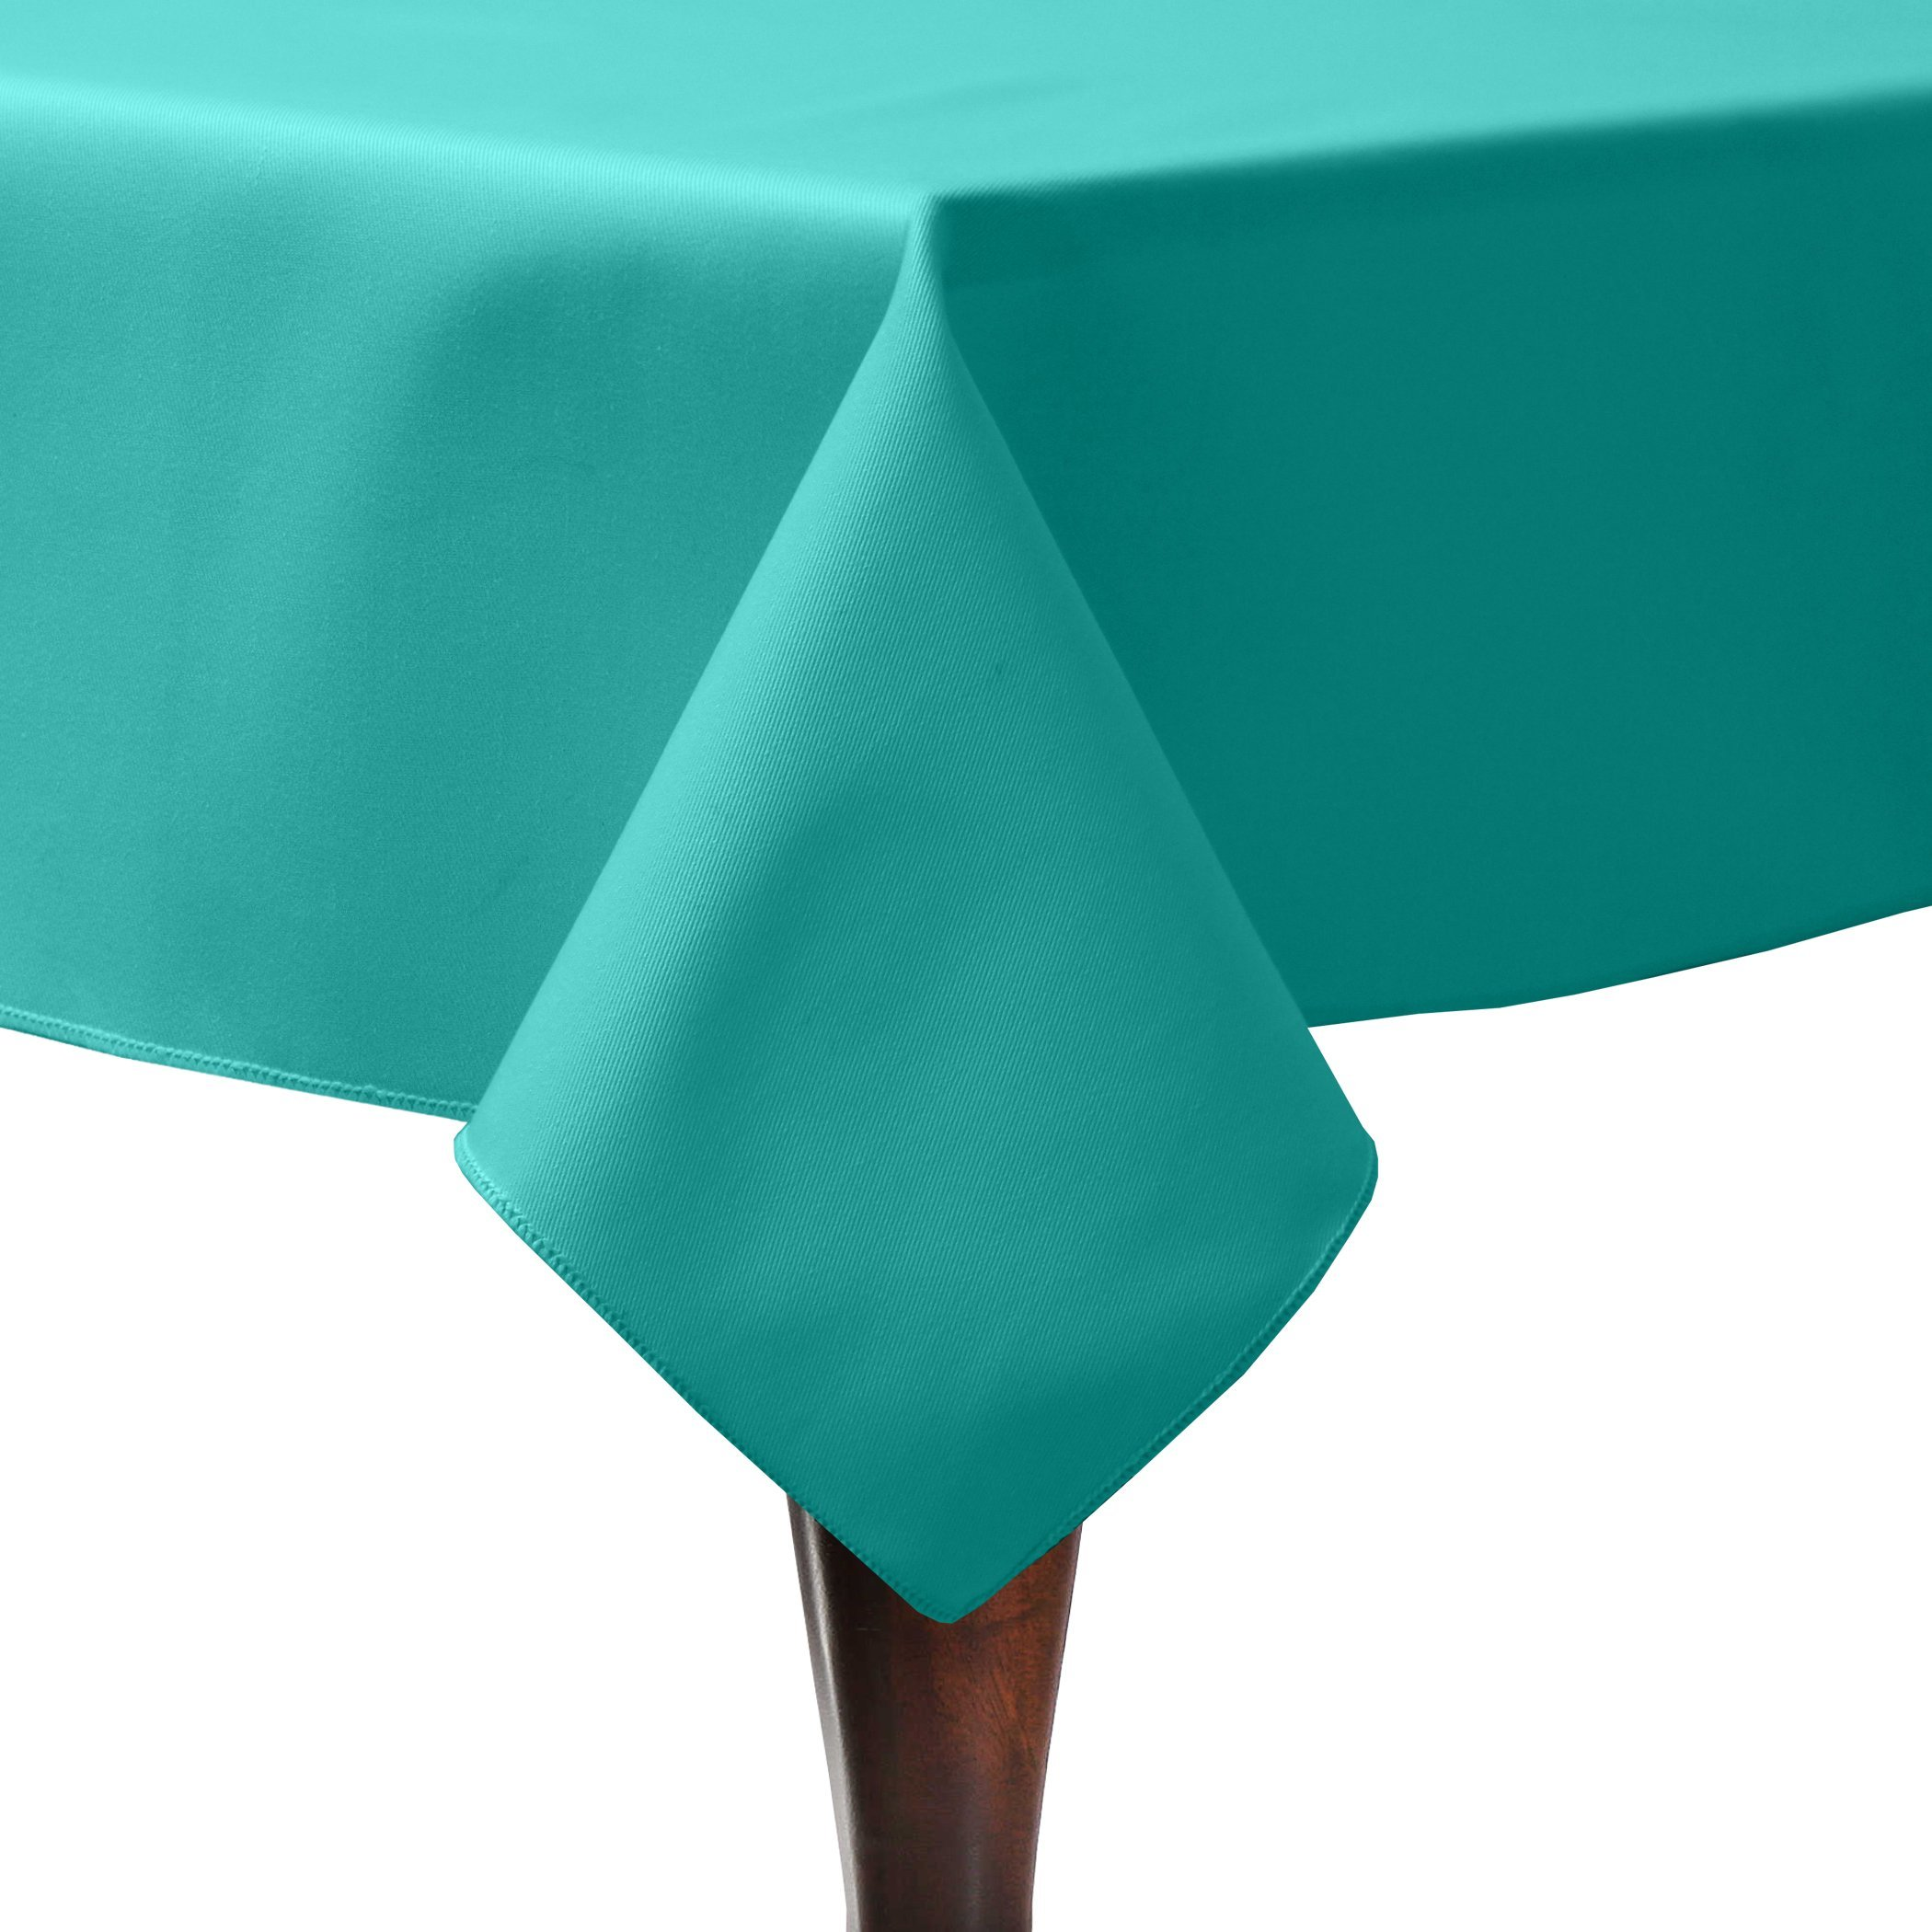 Ultimate Textile (3 Pack) Poly-cotton Twill 60 x 90-Inch Rectangular Tablecloth - for Restaurant and Catering, Hotel or Home Dining use, Jade